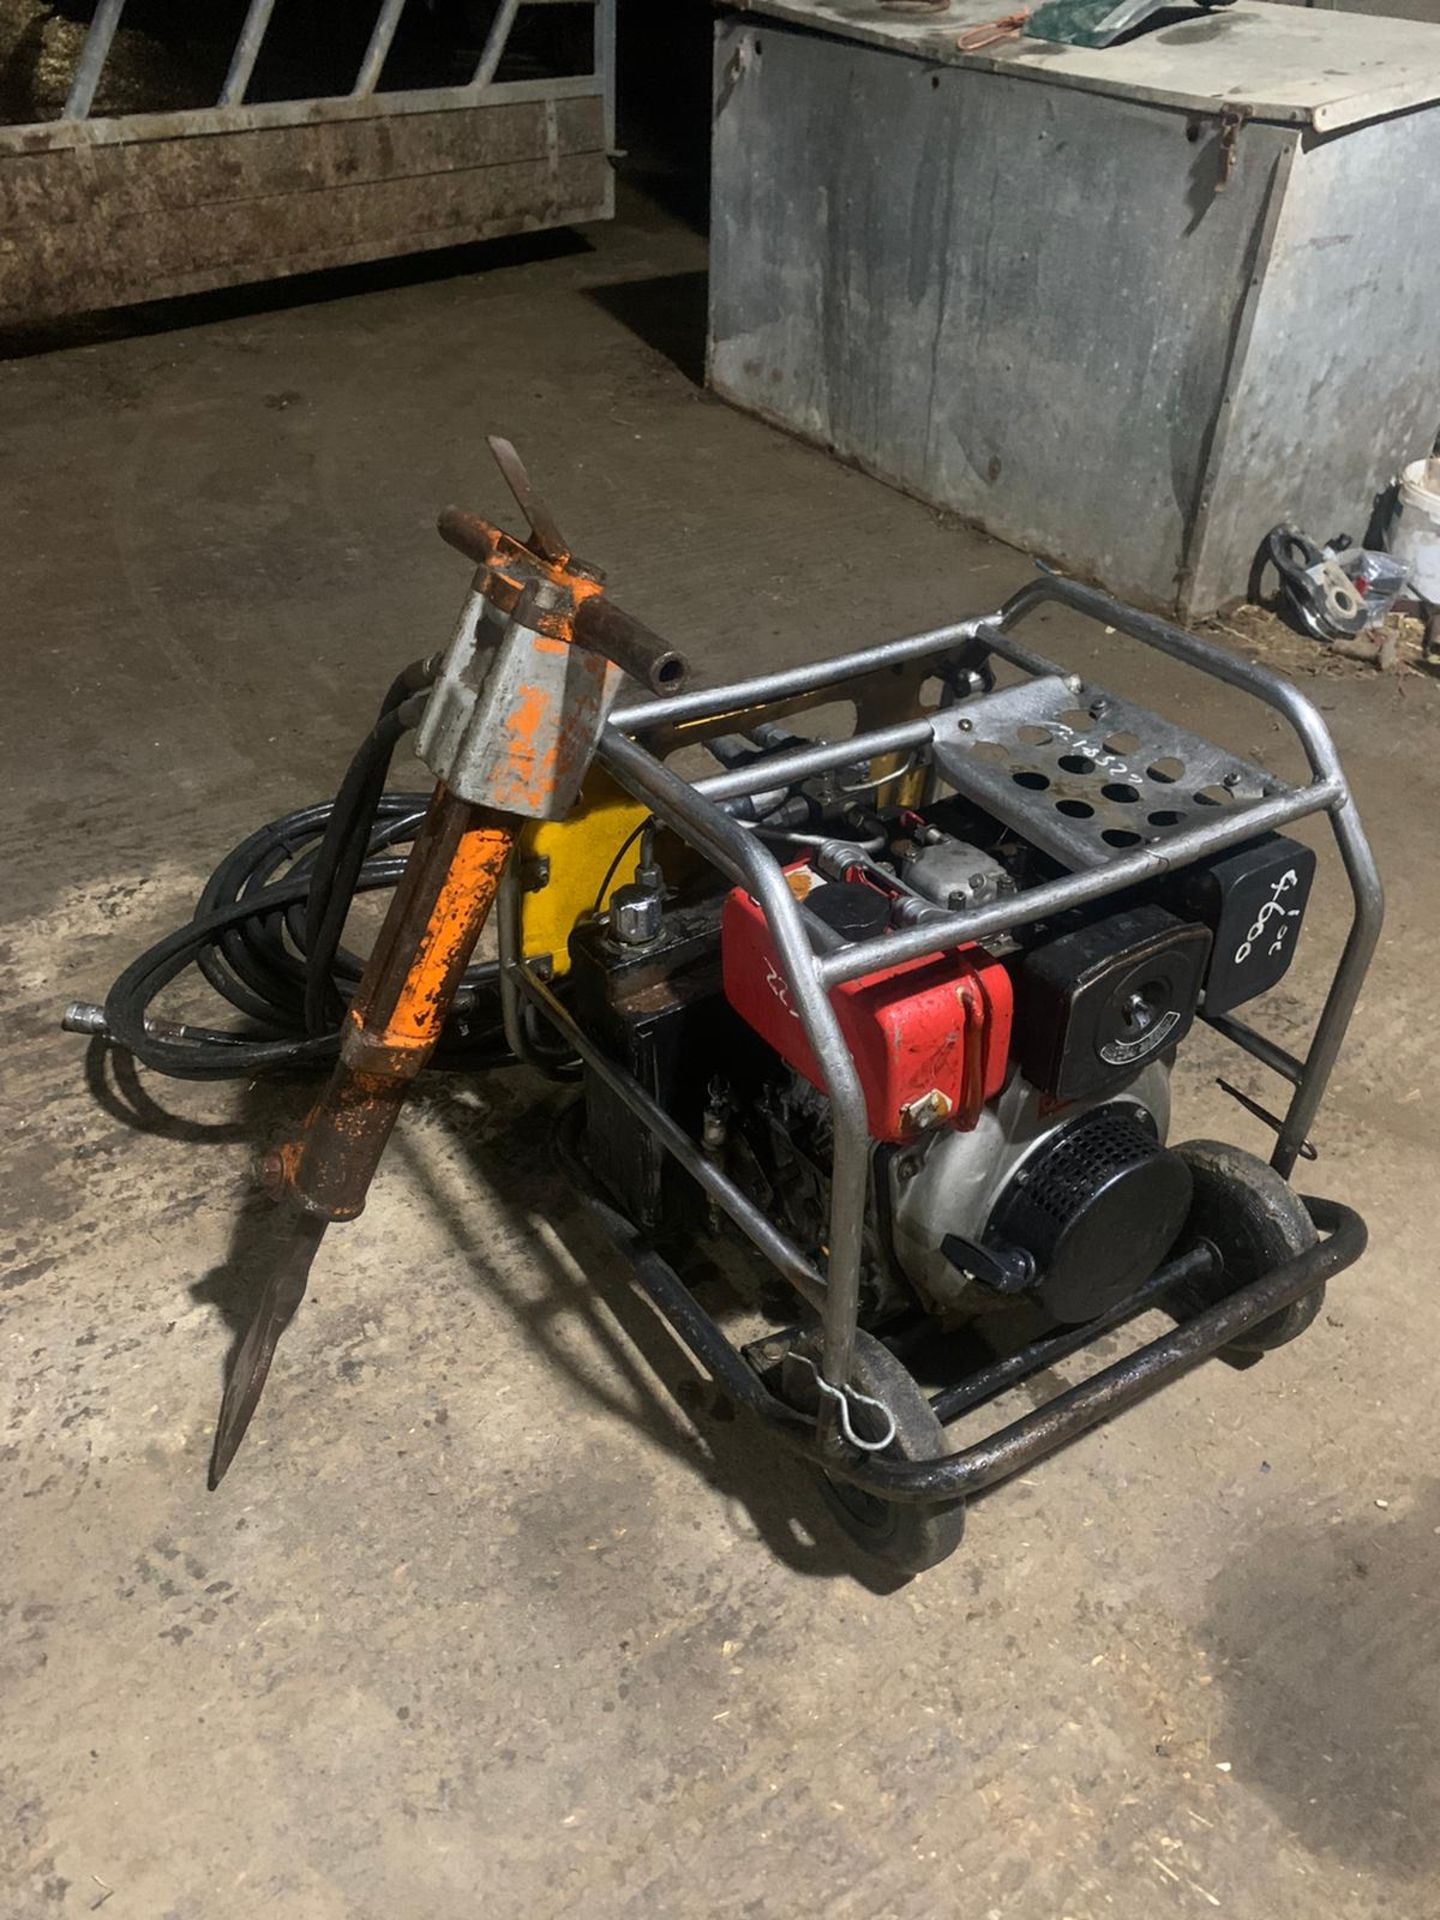 JCB Diesel Hydraulic Beaver Pack Yanmar Diesel L70 Engine Easy To Move Around Pipes Are Like New - Image 4 of 6